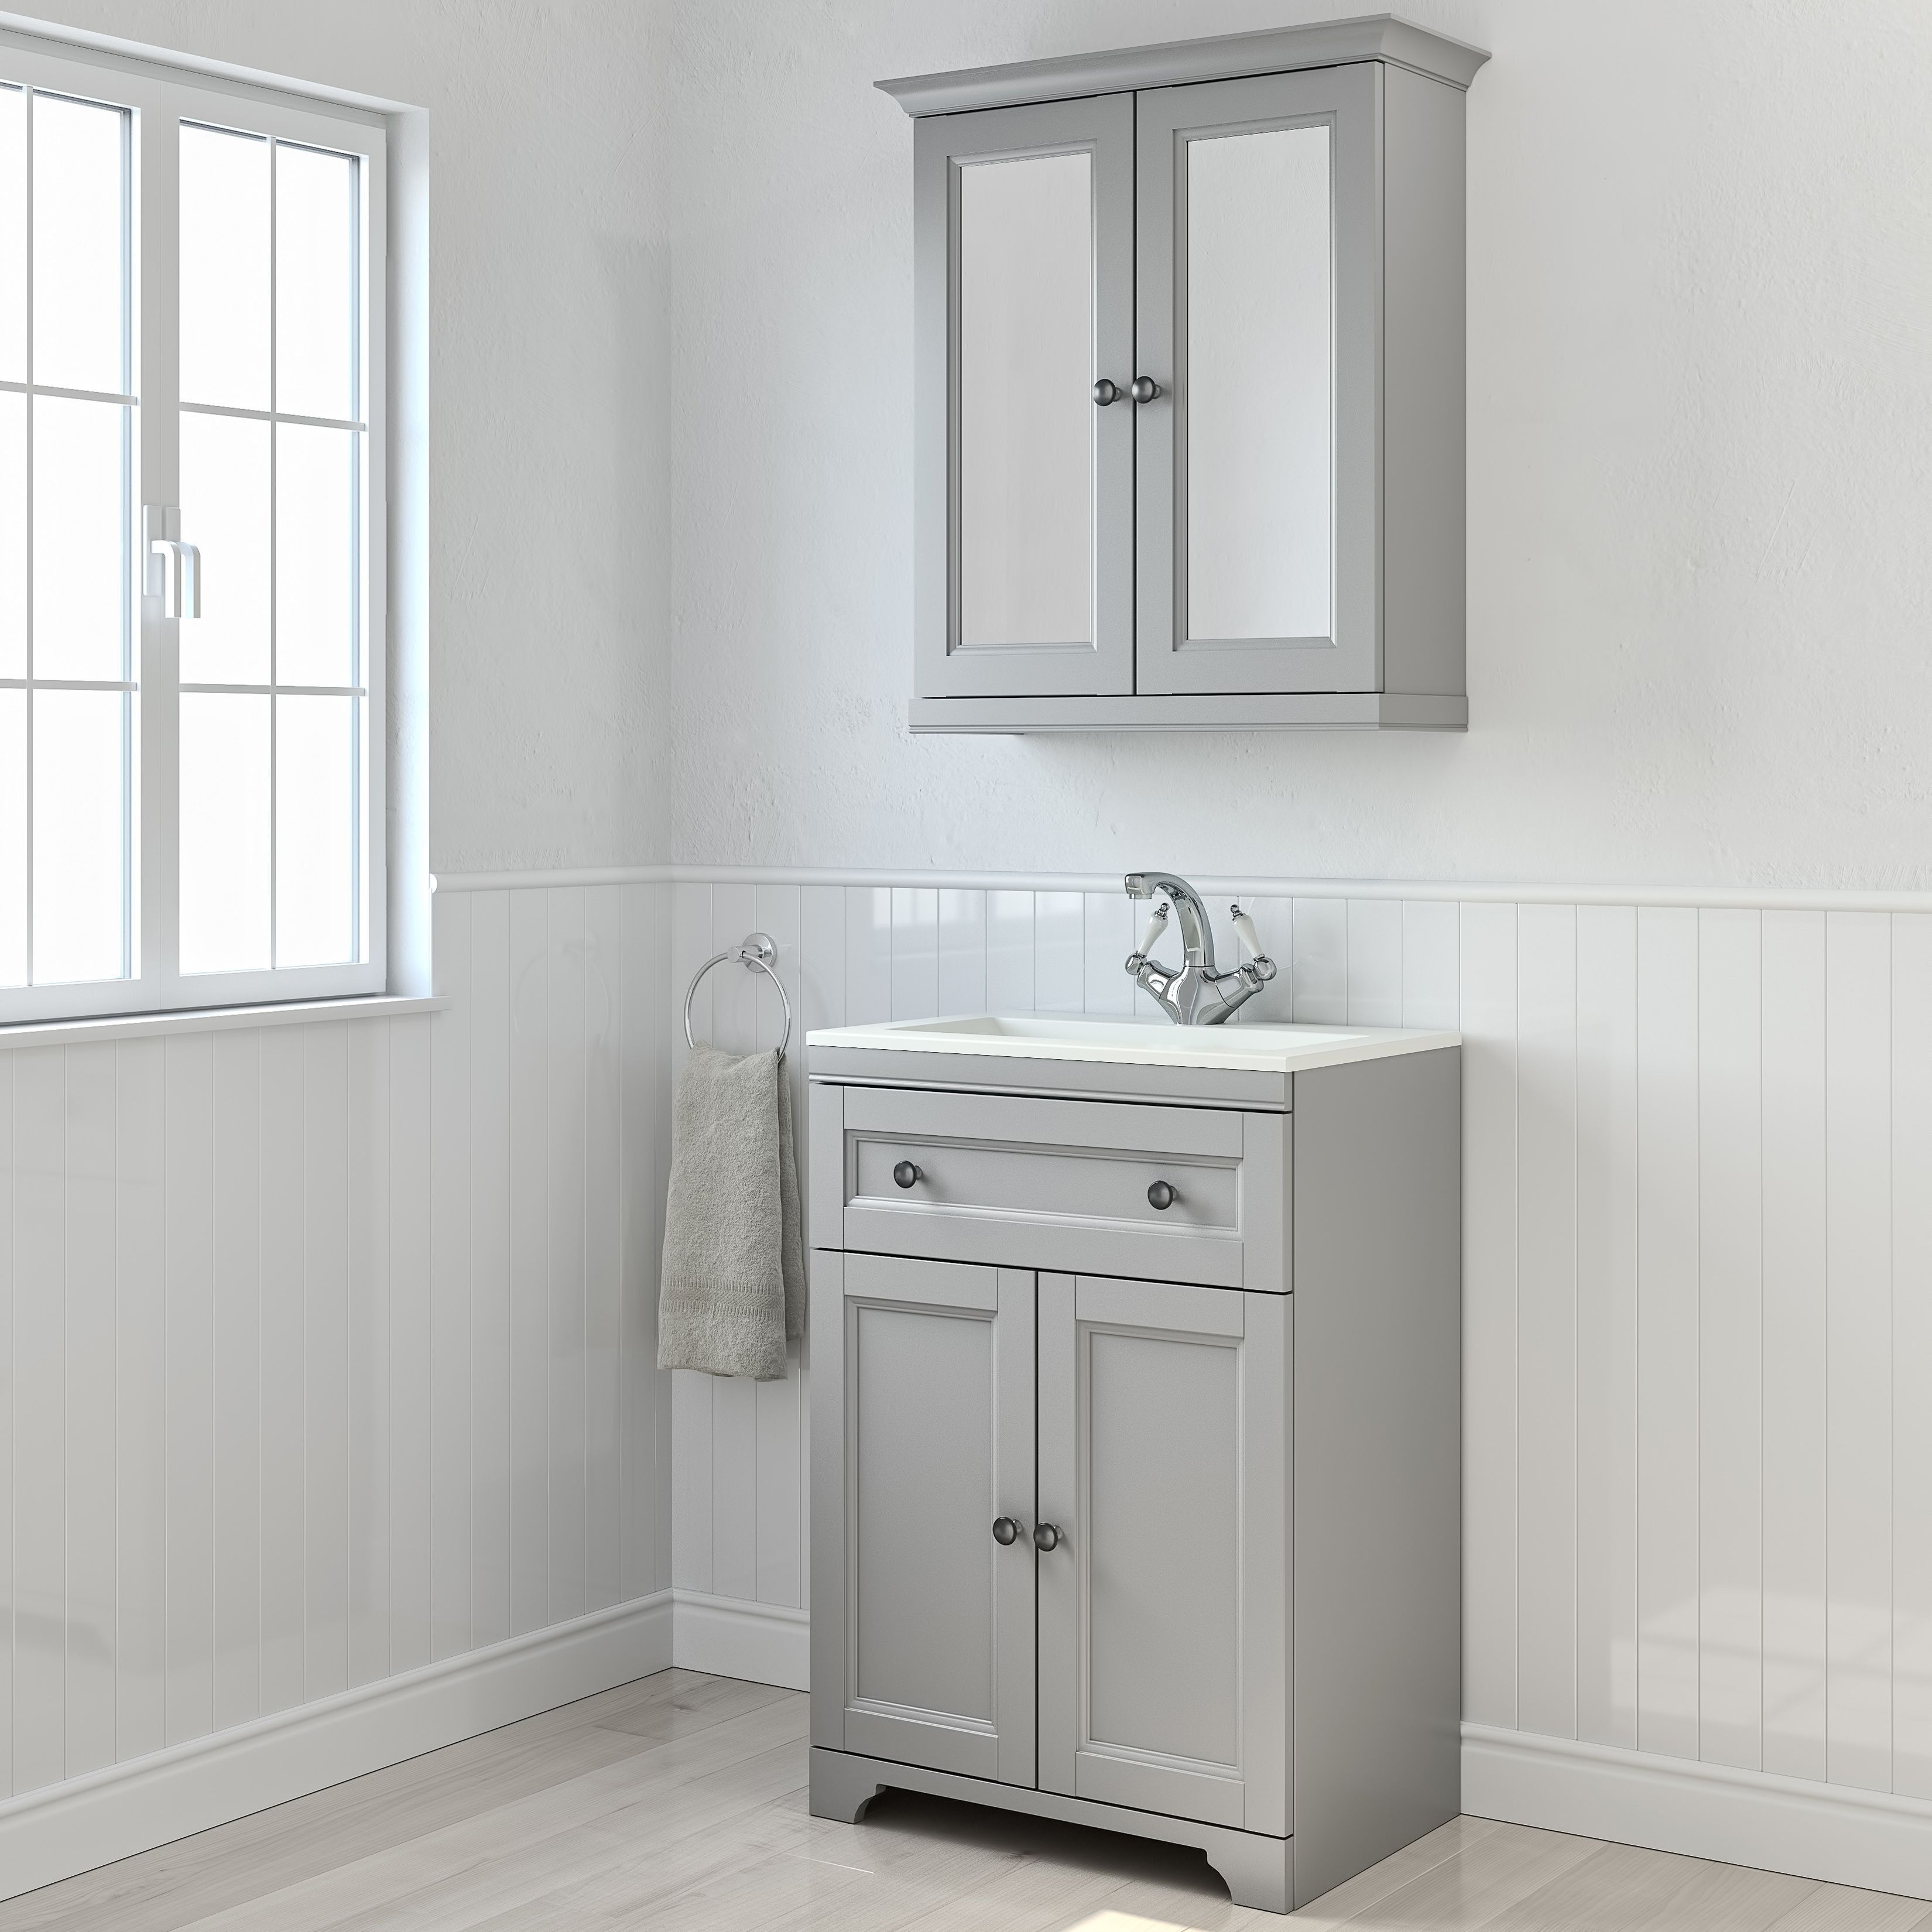 Washstands And Vanity Units